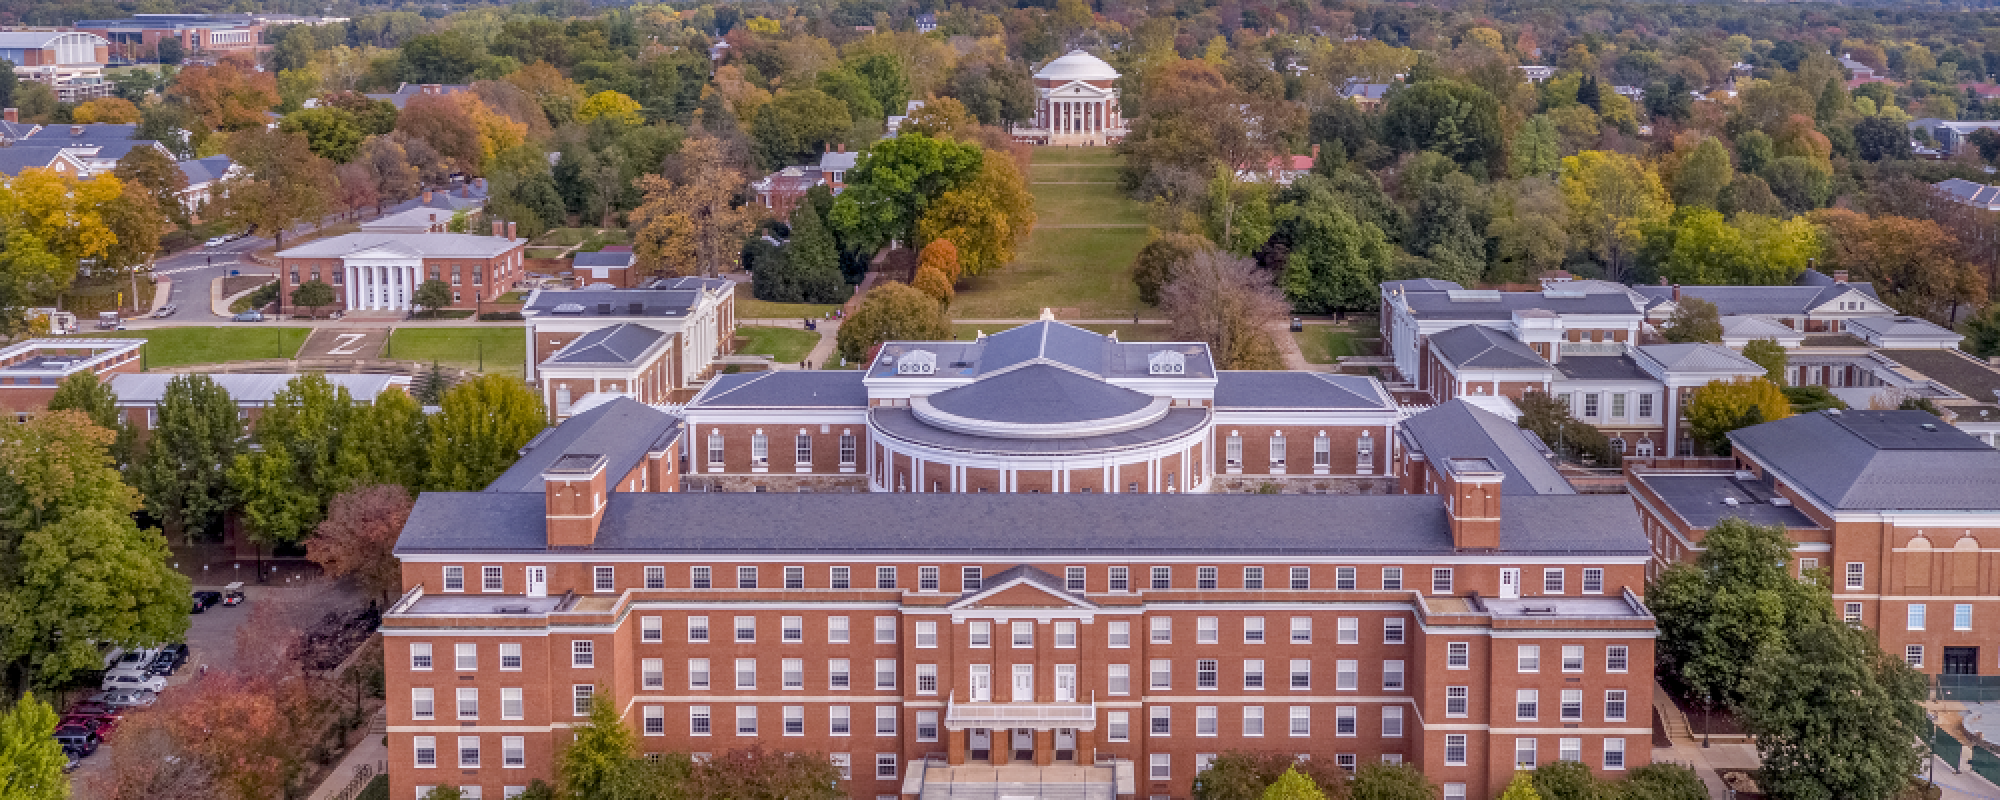 UVA Rotunda from air